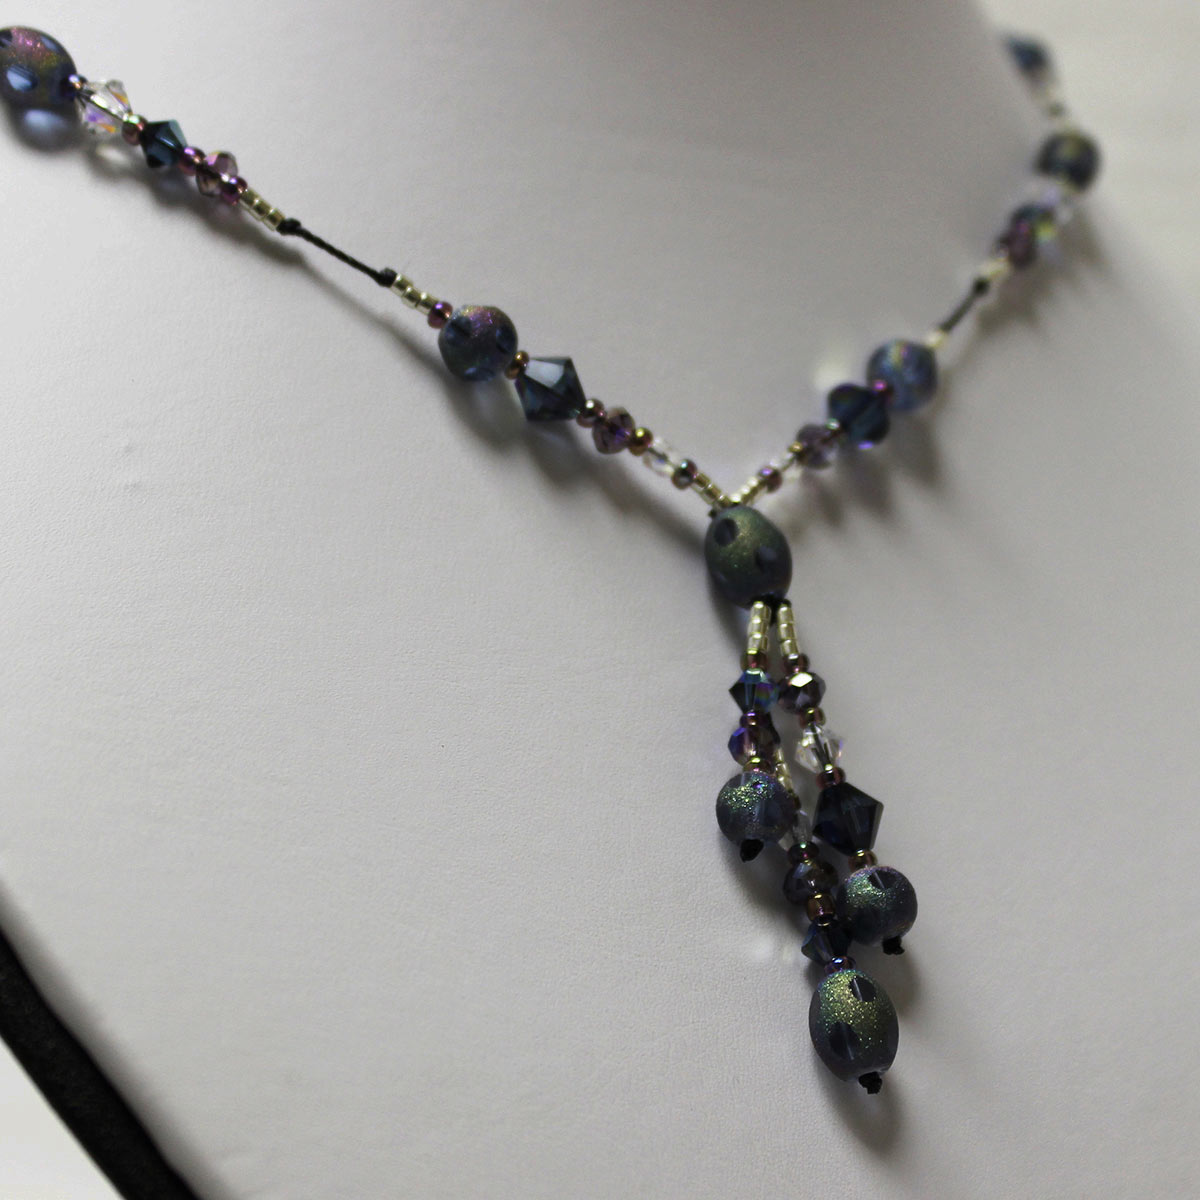 triple drop necklace, oval stardust beads, olivine green crystals, amethyst crystals, clear crystals